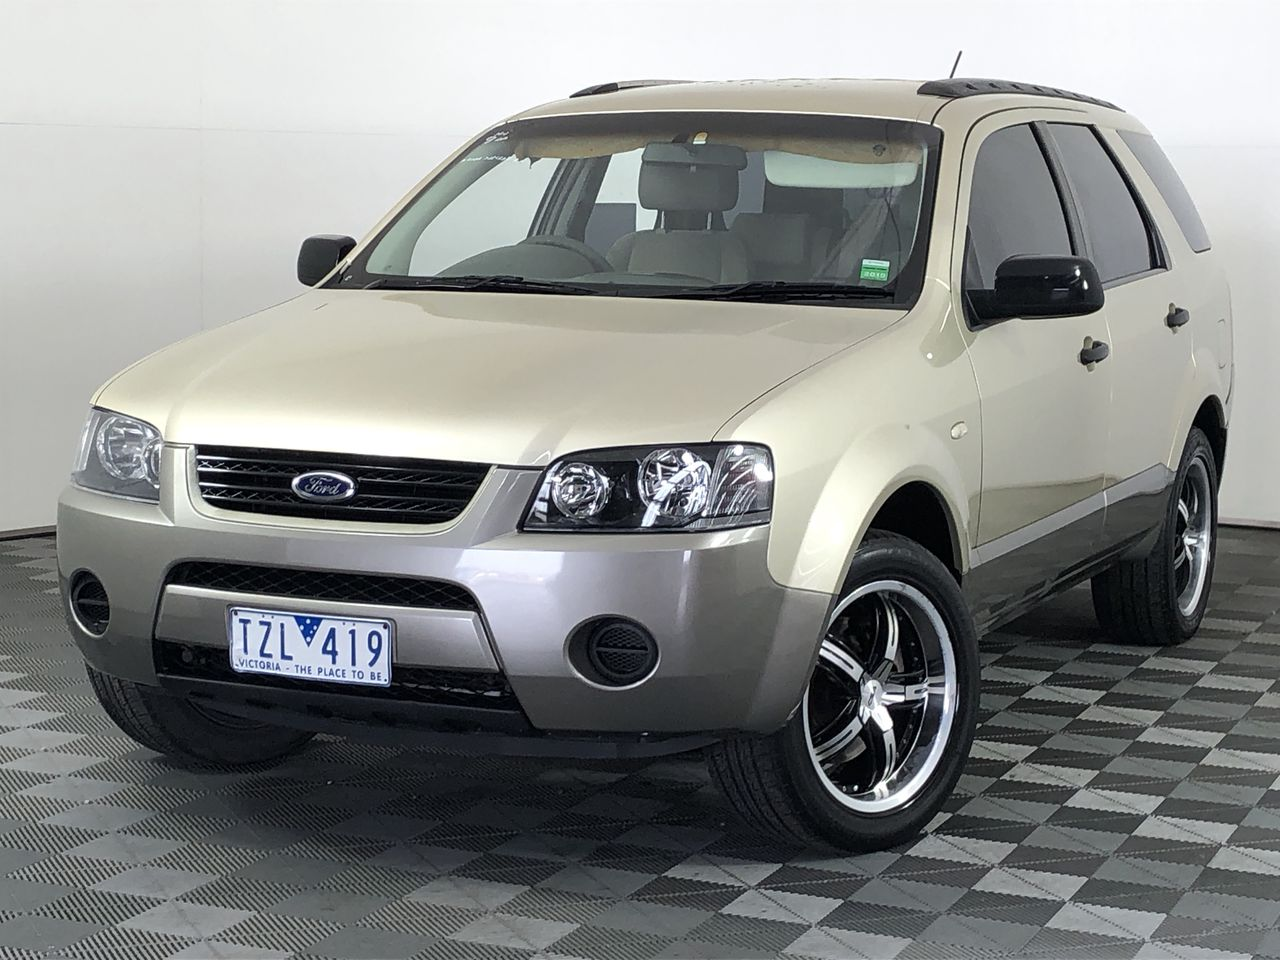 2005 Ford Territory TX (RWD) SY Automatic 7 Seats Wagon